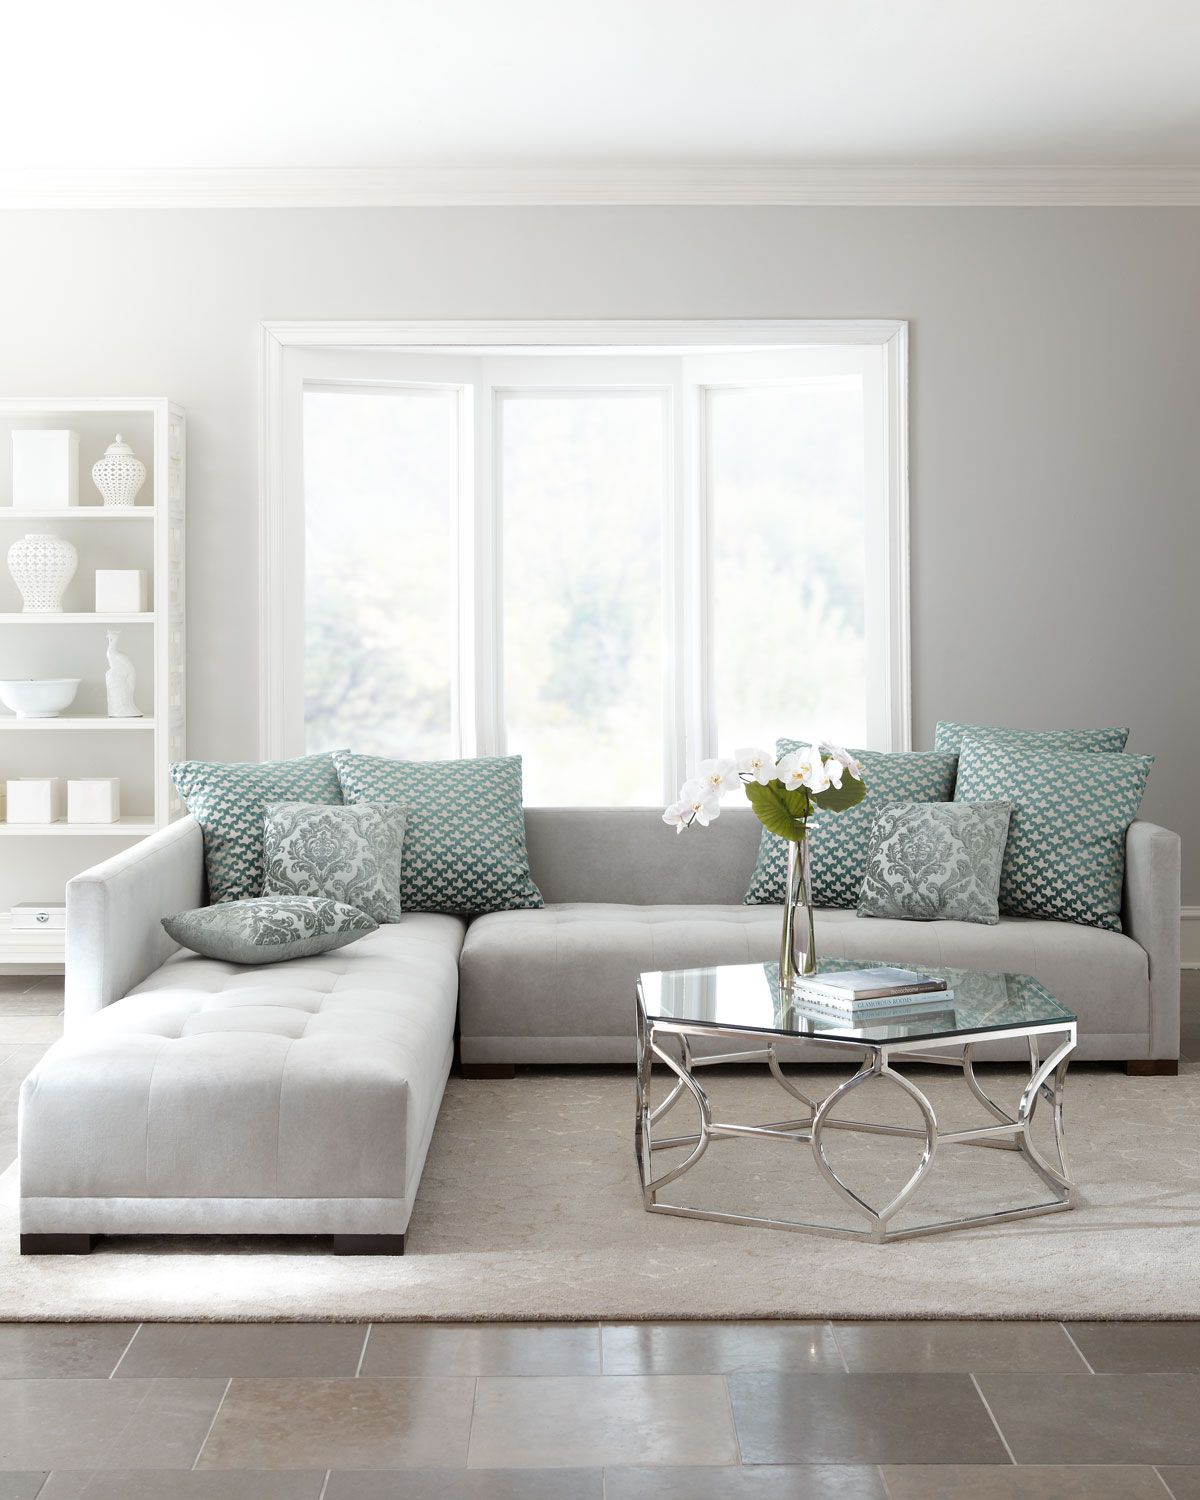 Haute House Sevina Tufted Sectional Sofa Horchow Living Room Grey Tufted Sectional Sofa Living Room Inspiration